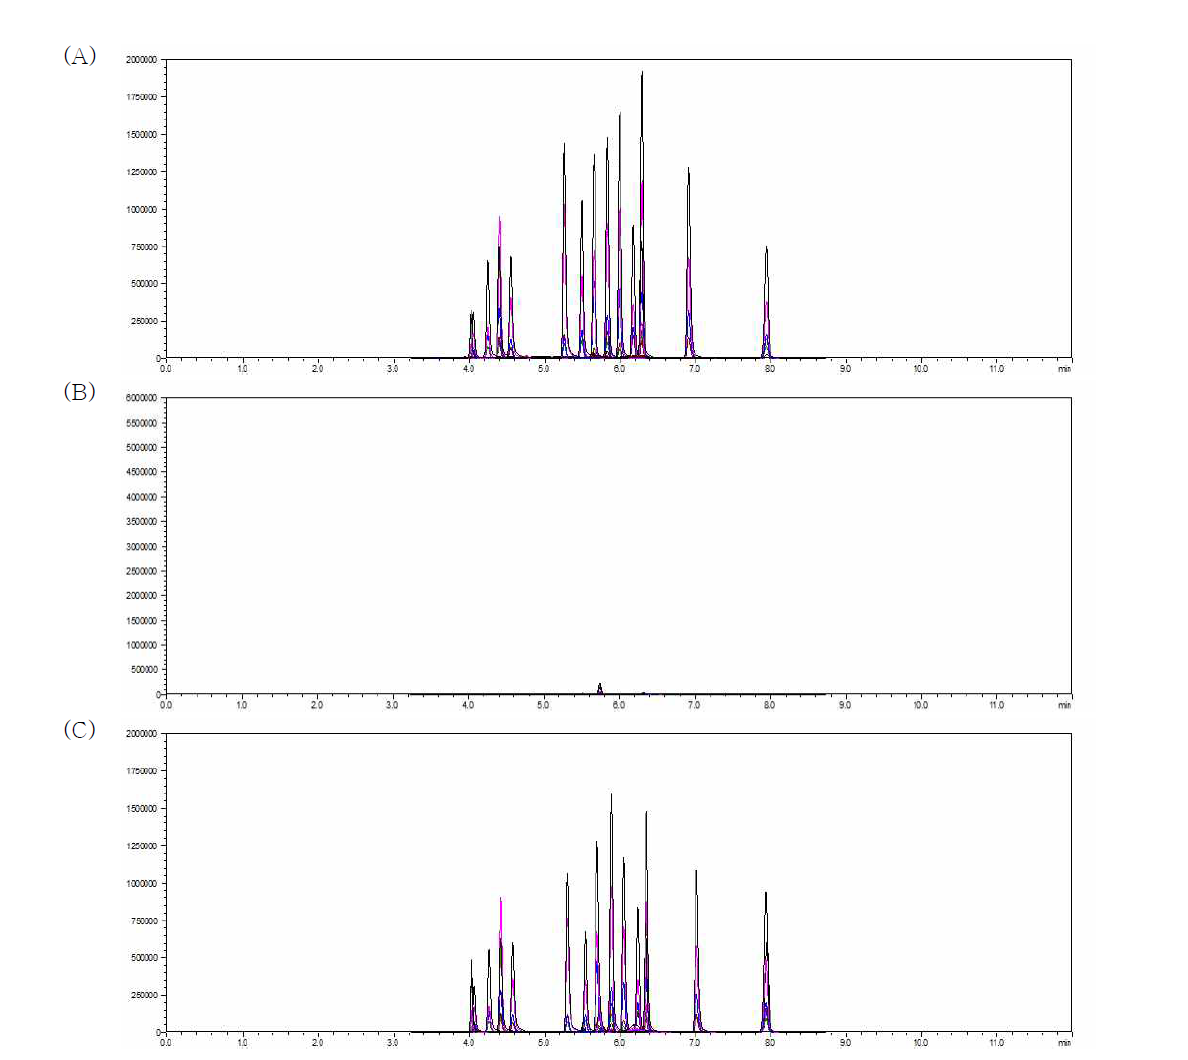 Chromatogram of dyes in eels: Standard solution (A) (0.001 mg/L), matrix blank (B), dyes spiked sample (C) (0.005 mg/kg)